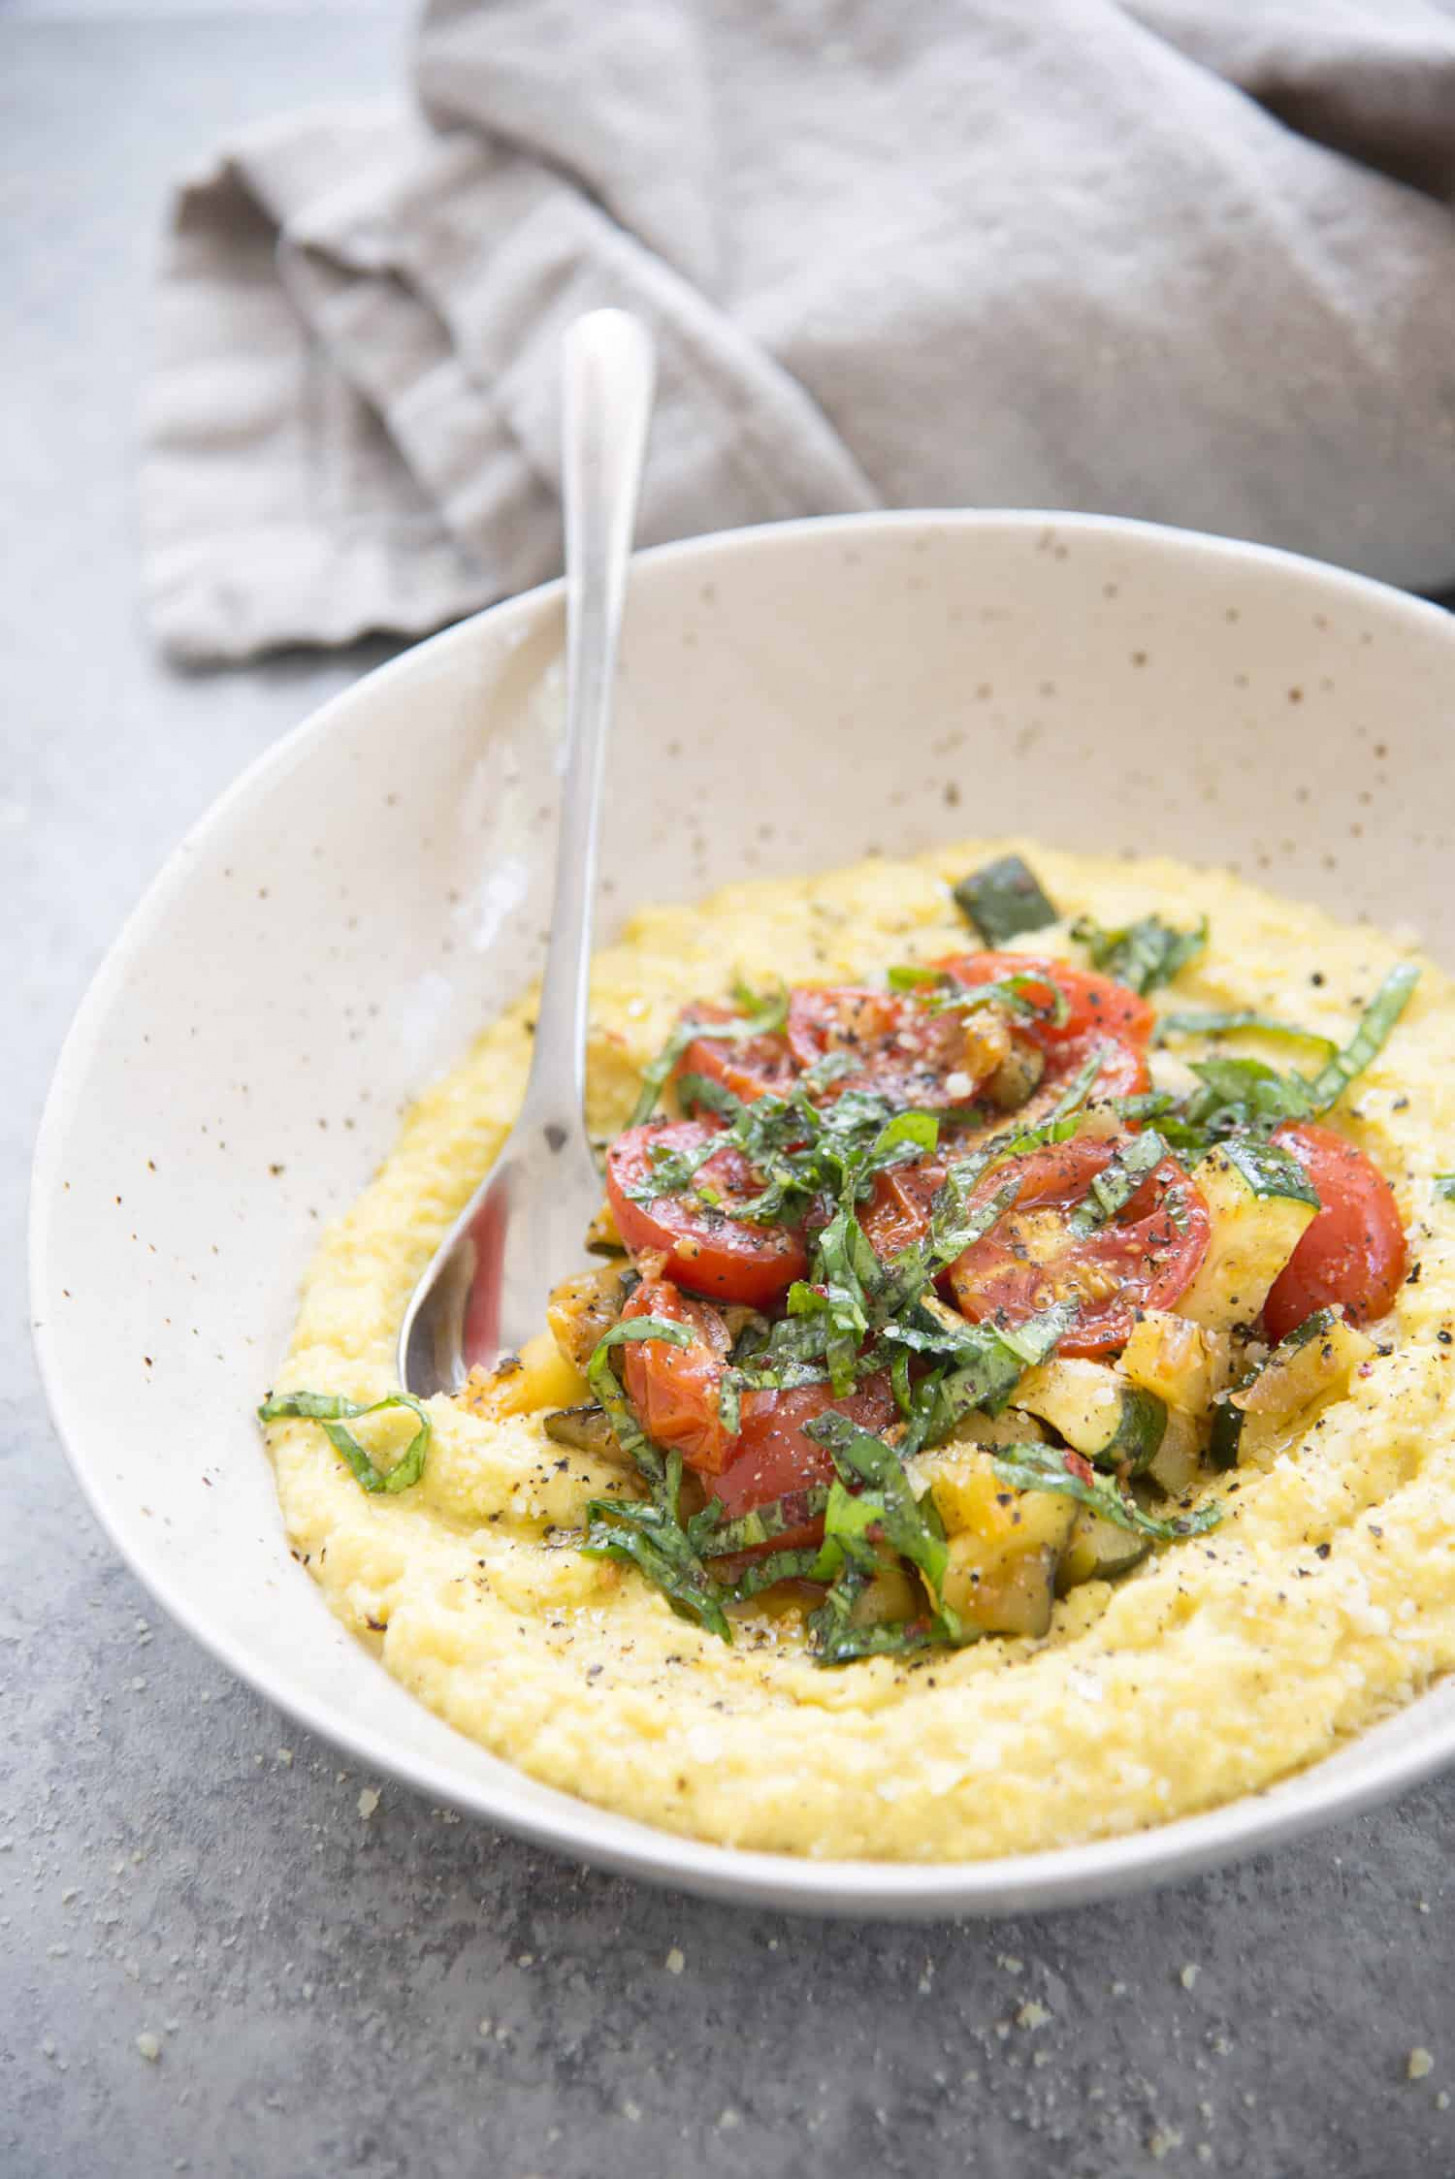 Fresh Corn Polenta With Farm Vegetables And Spicy Basil Oil - Polenta Recipes Vegetarian